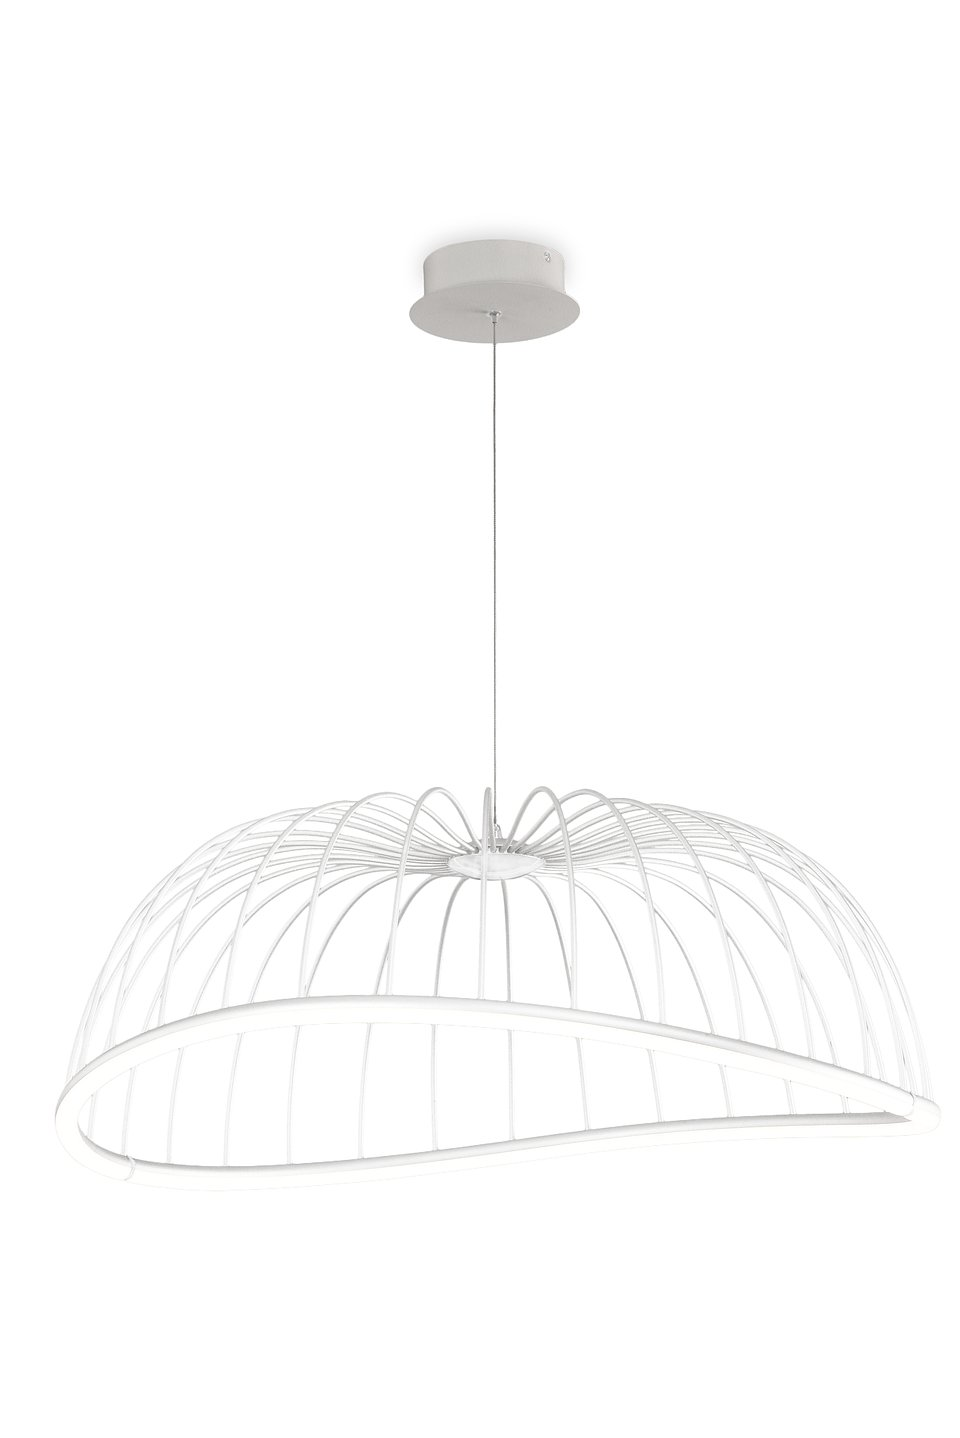 Celeste lighting collection for Mantra by Santiago Sevillano Studio (1).jpg